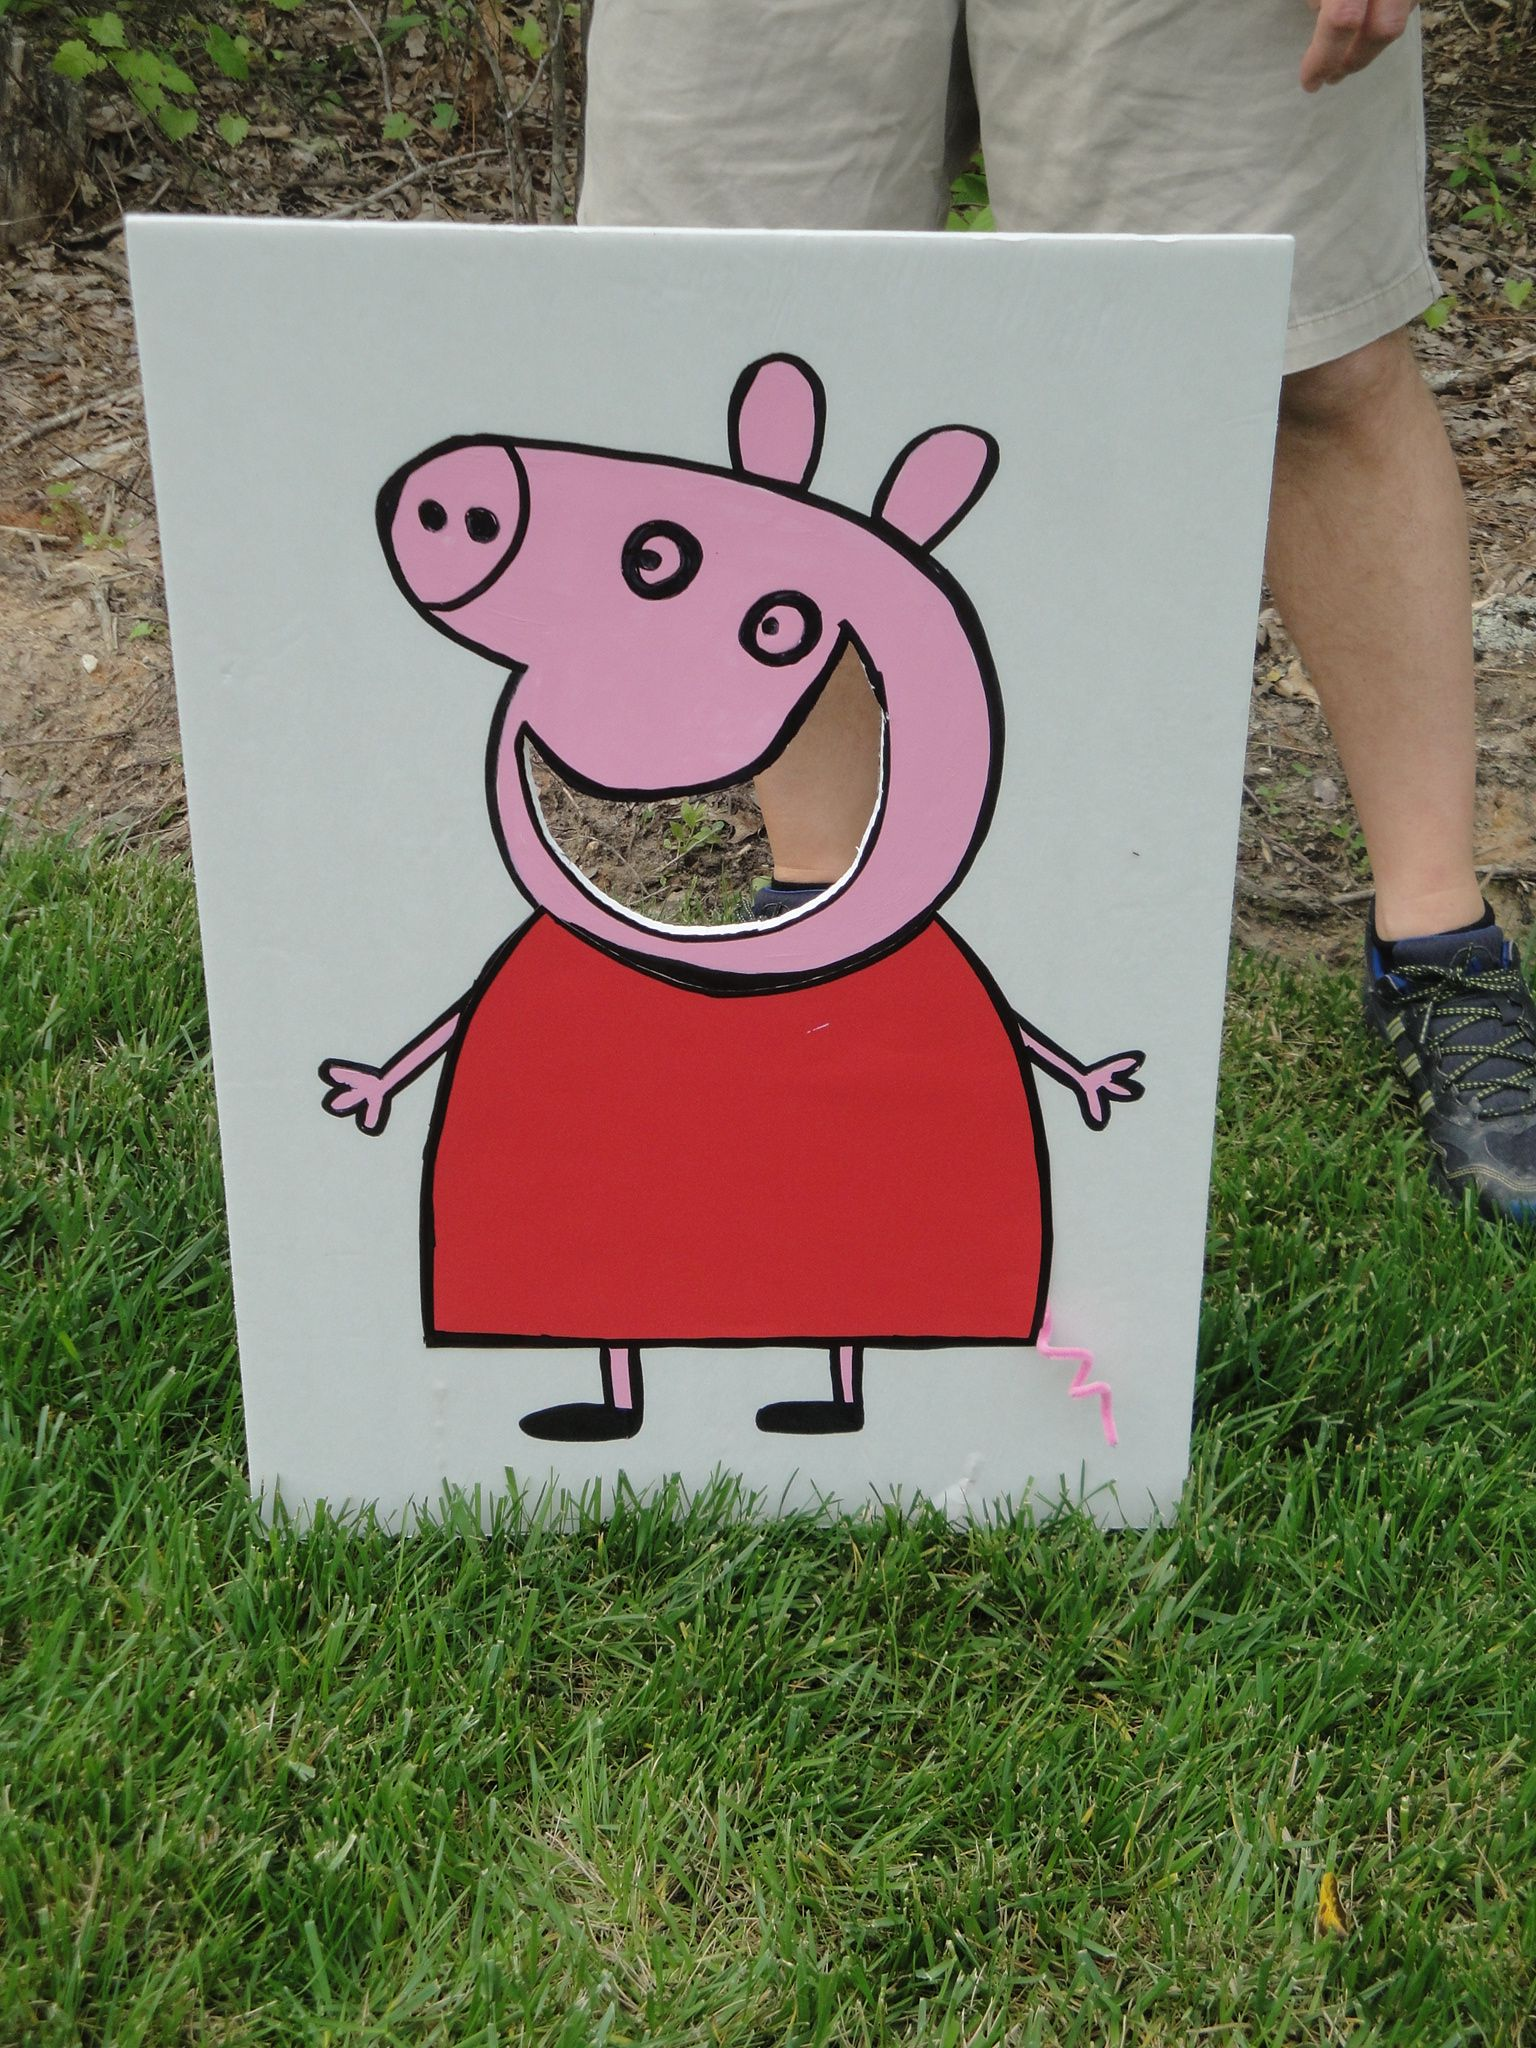 Bean Bag Toss With Peppa Peppa Pig Party Oink Pinterest Pig